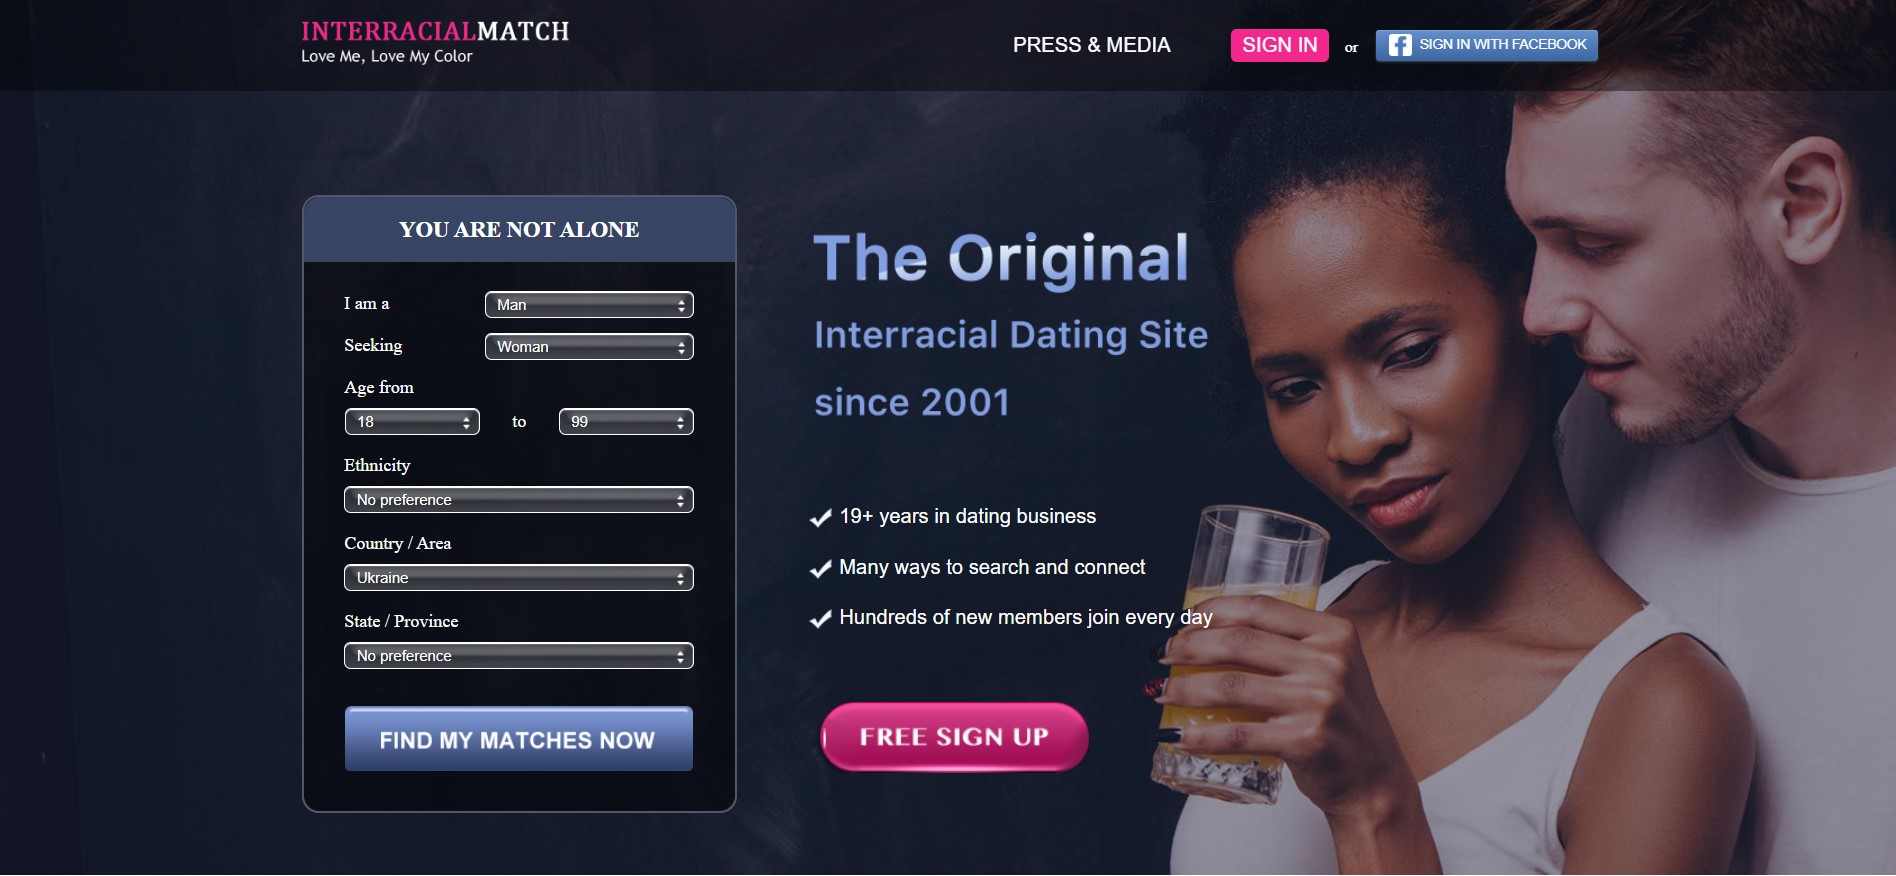 InterracialMatch main page